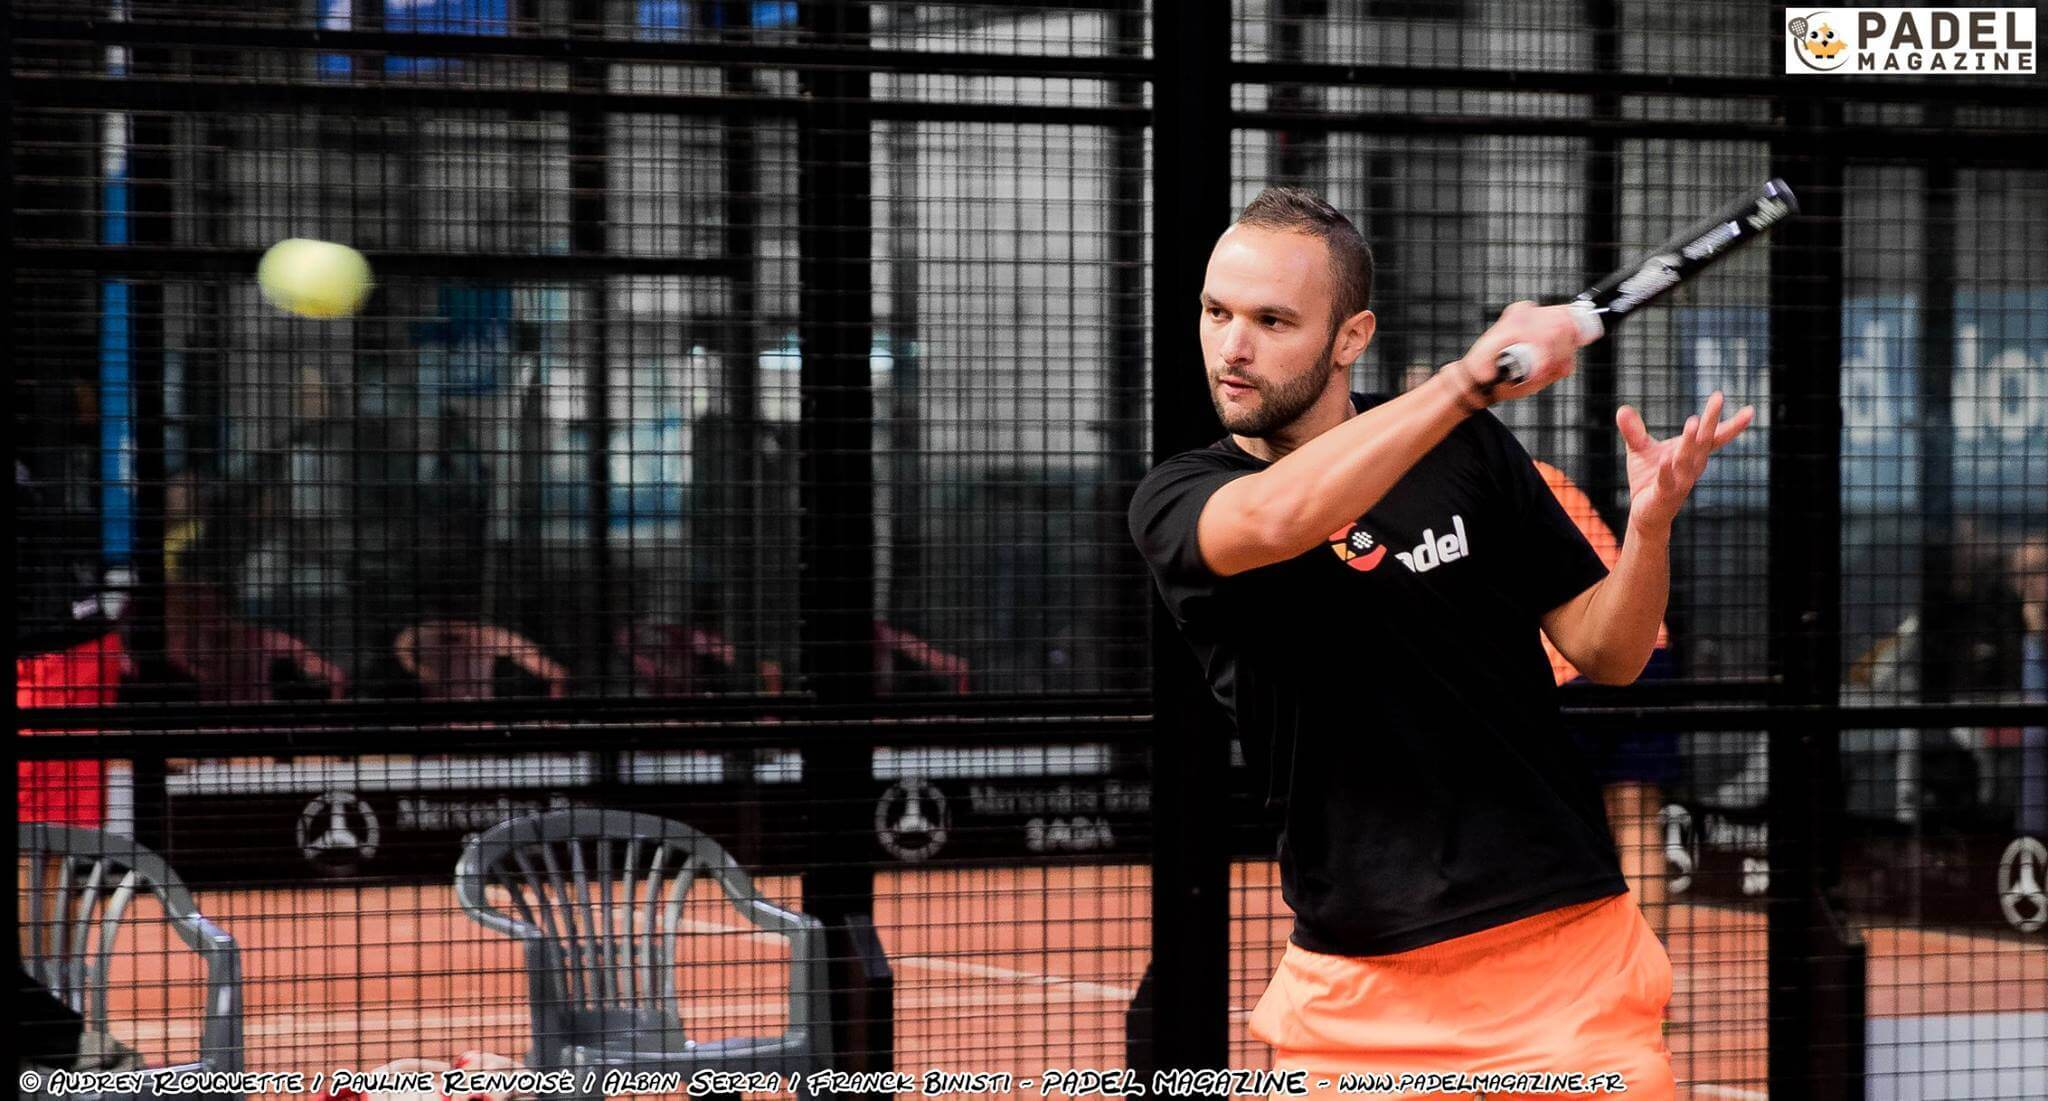 L'enseignement du padel en France